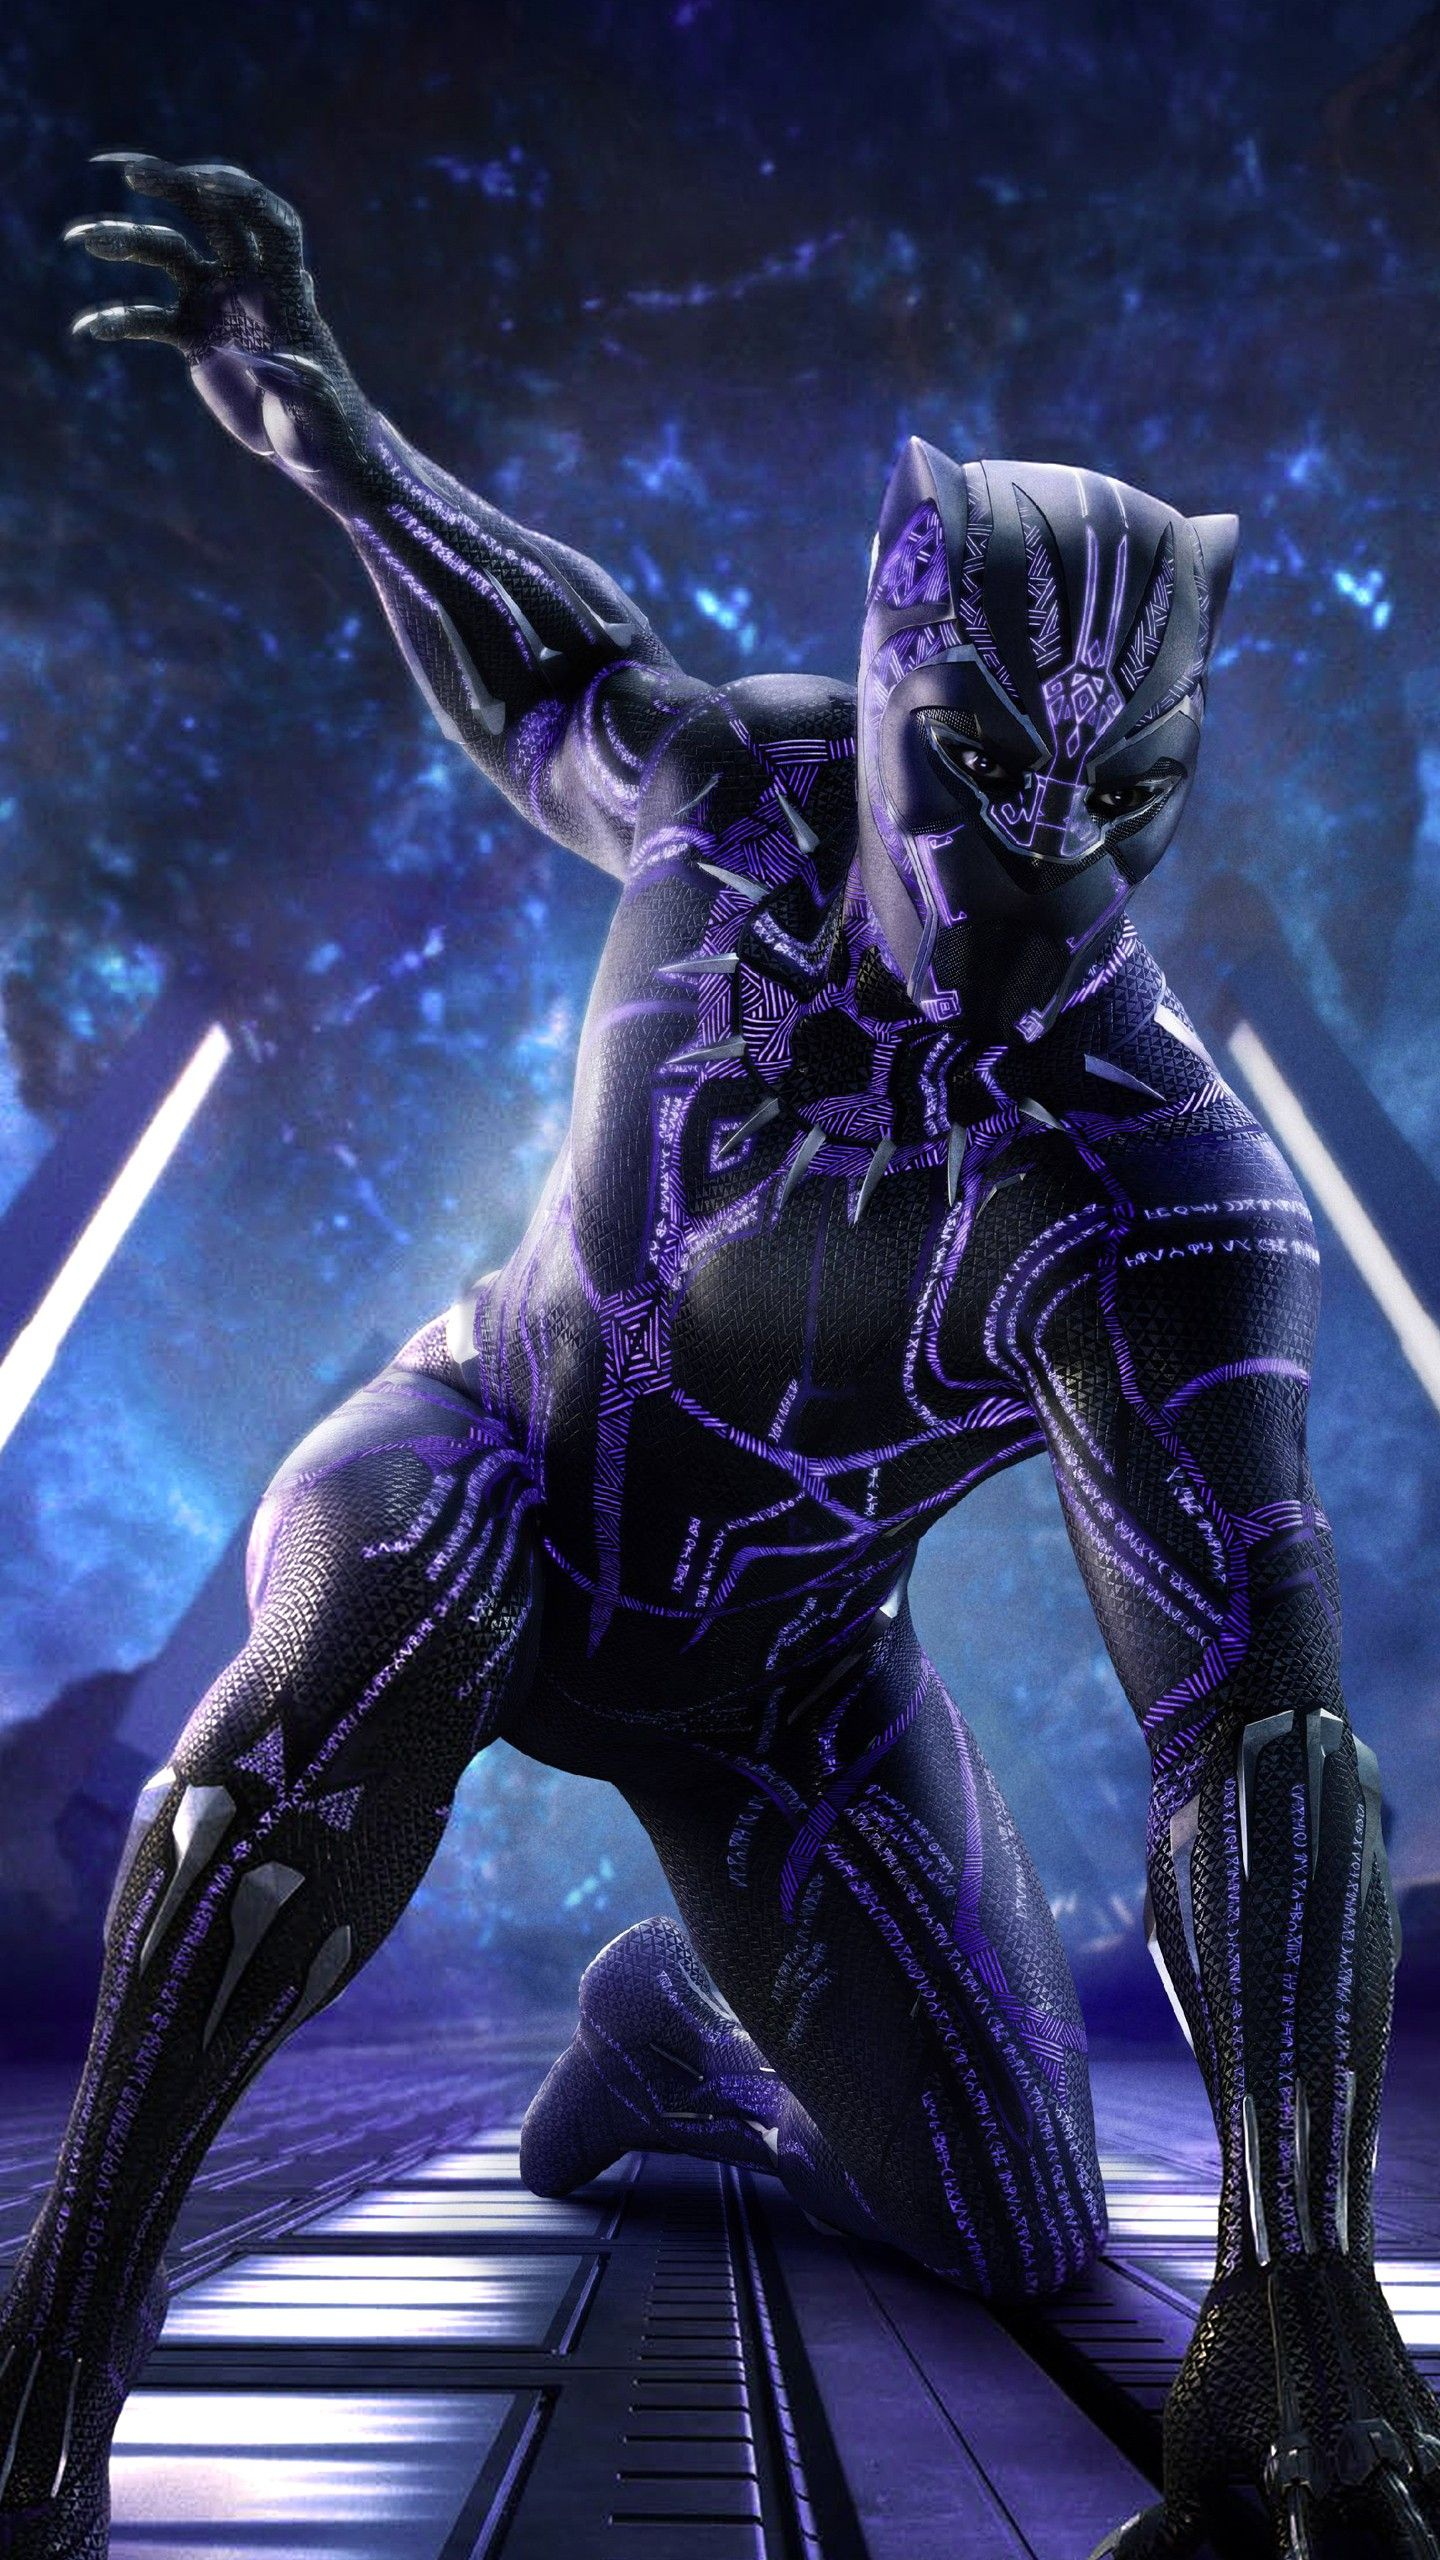 1440x2560 Black Panther Marvel HD Wallpaper 73+ images | 4 Wallpaper